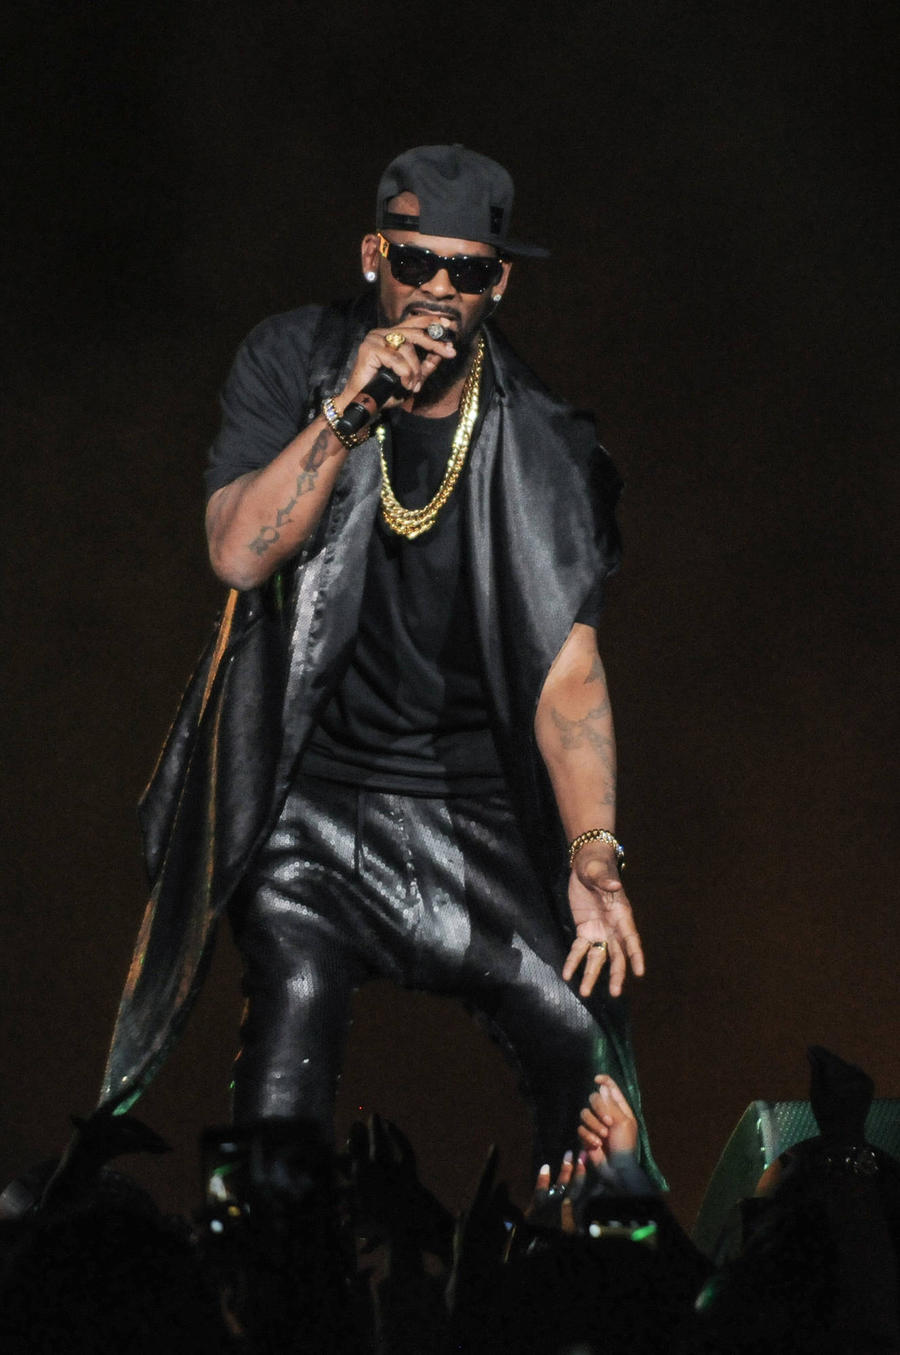 Petition Calls For R. Kelly To Be Dropped From Soulquarius Festival Lineup